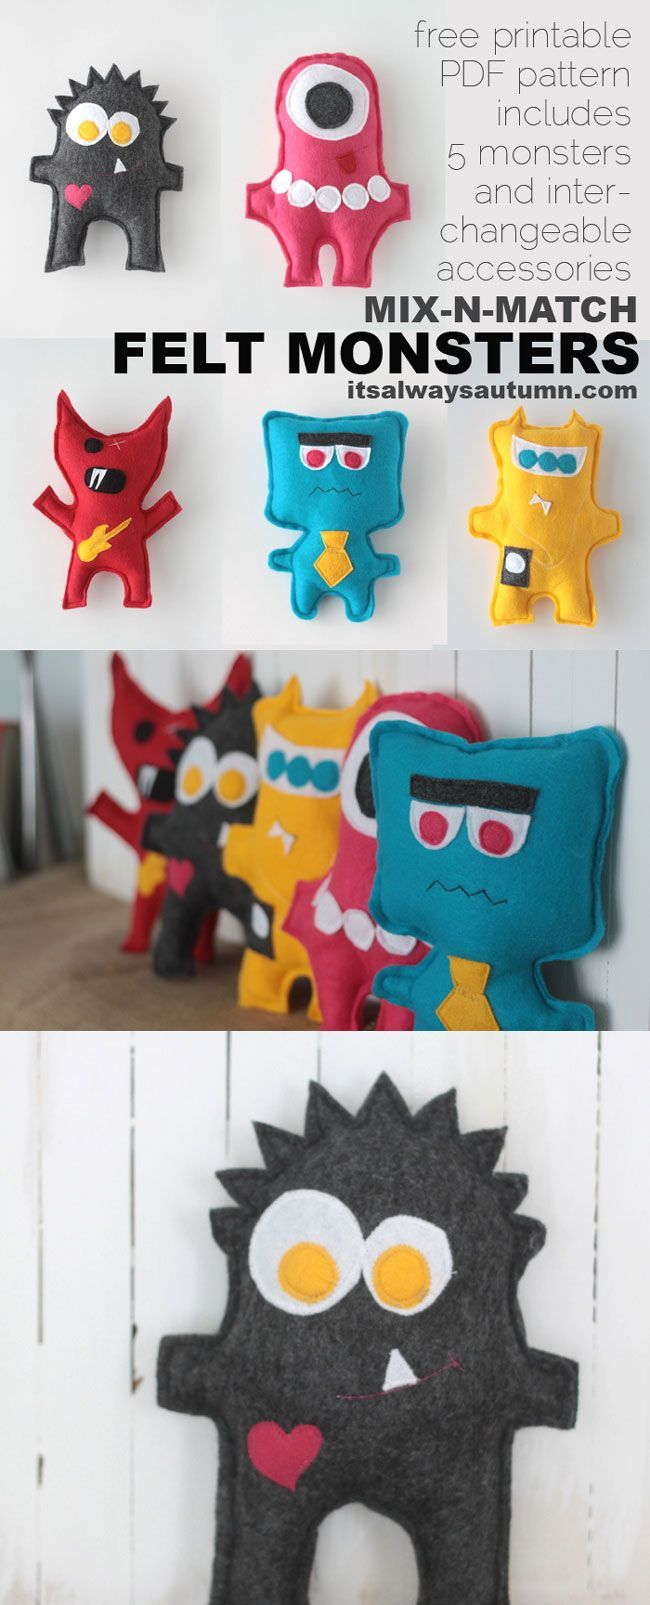 get the FREE printable #sewing #pattern for these easy felt #monster dolls and make a special toy for your child. pattern includes mix-n-match features and accessories, and post includes step-by-step photo tutorial.